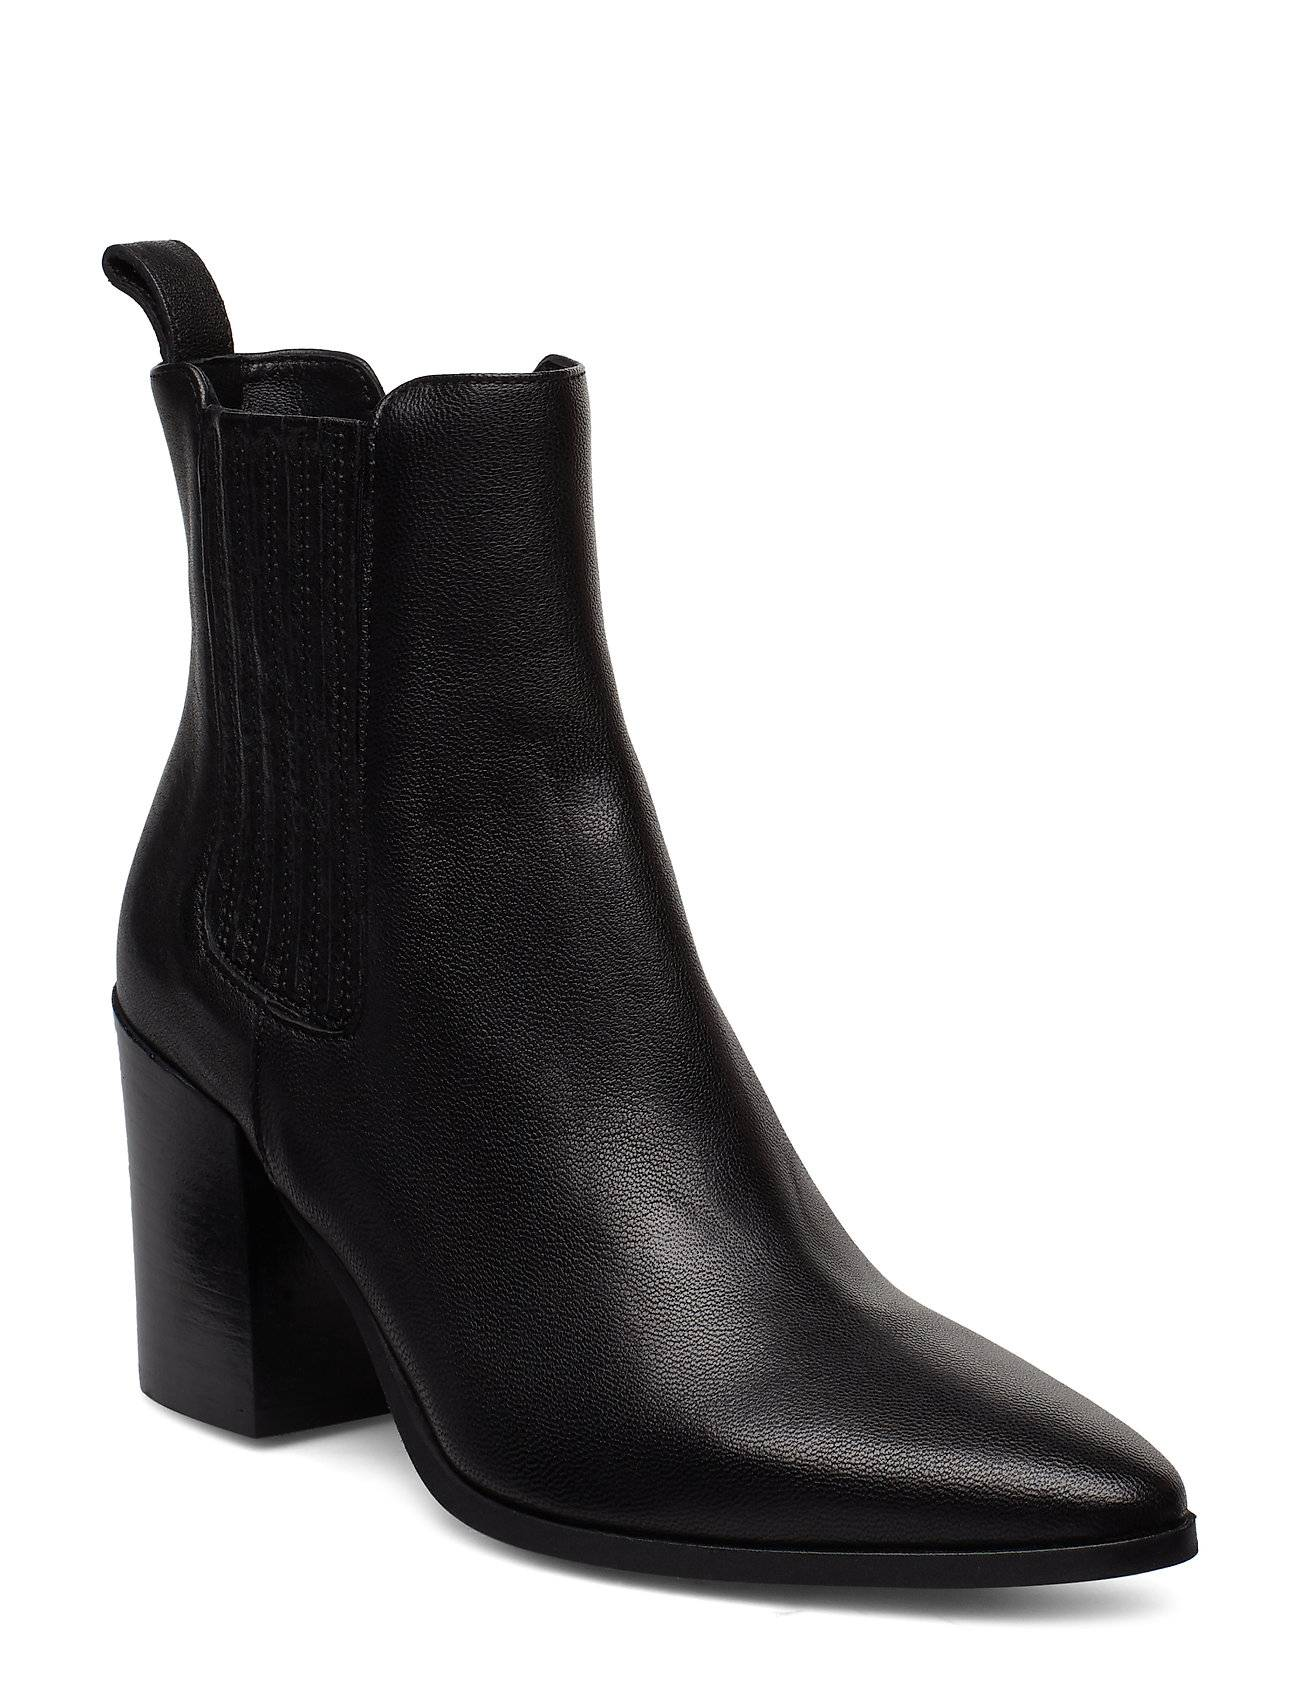 Apair Classic Western Elastic Shoes Boots Ankle Boots Ankle Boots With Heel Musta Apair